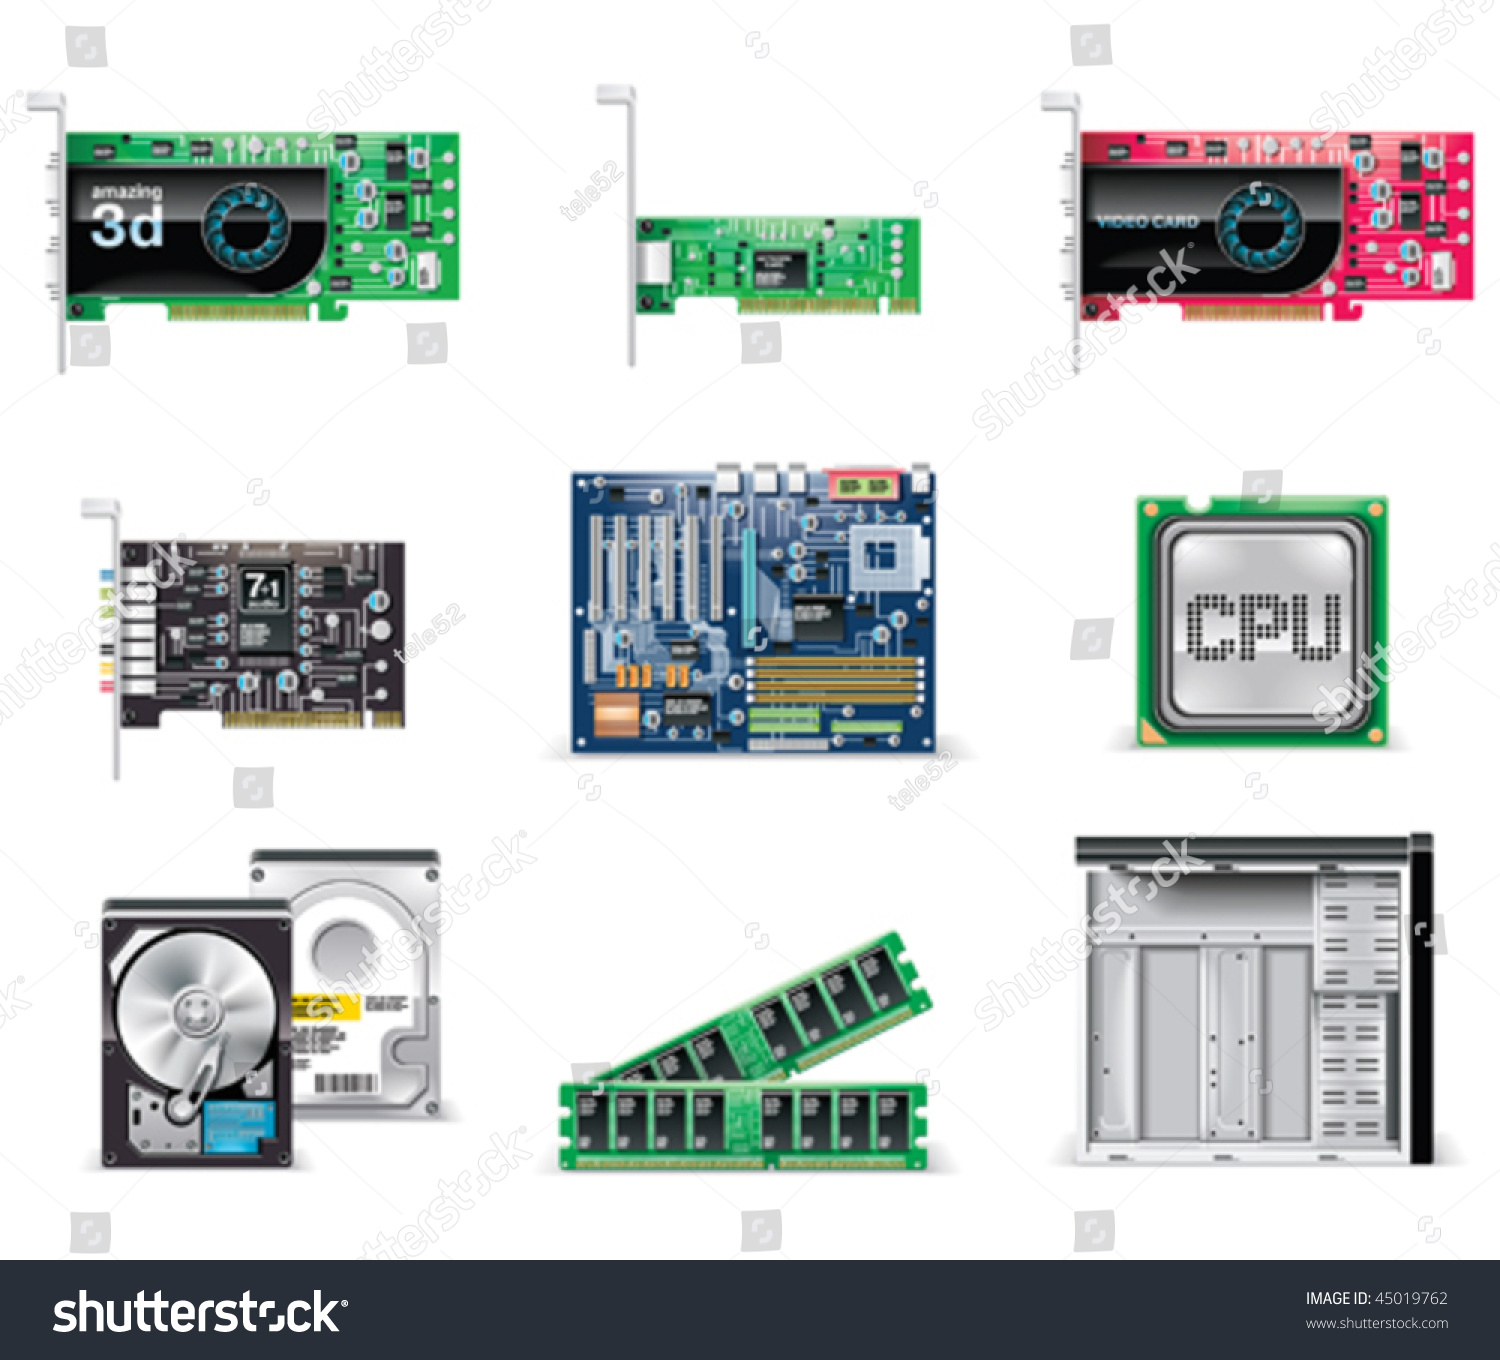 how to buy computer parts